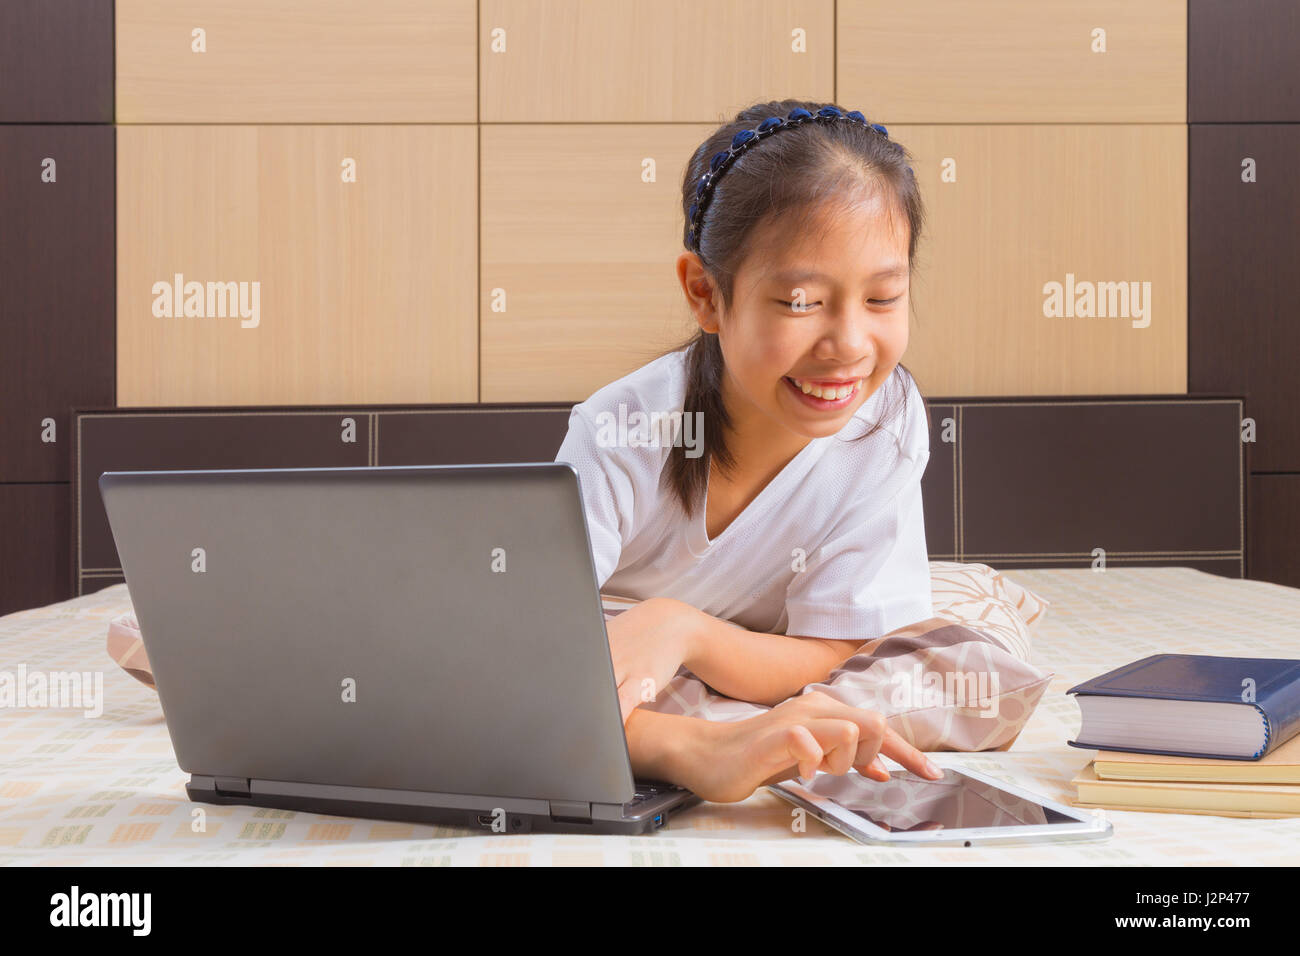 Happy Asian female teenager using technology, interacting with moblie computer tablet device in her bed Stock Photo